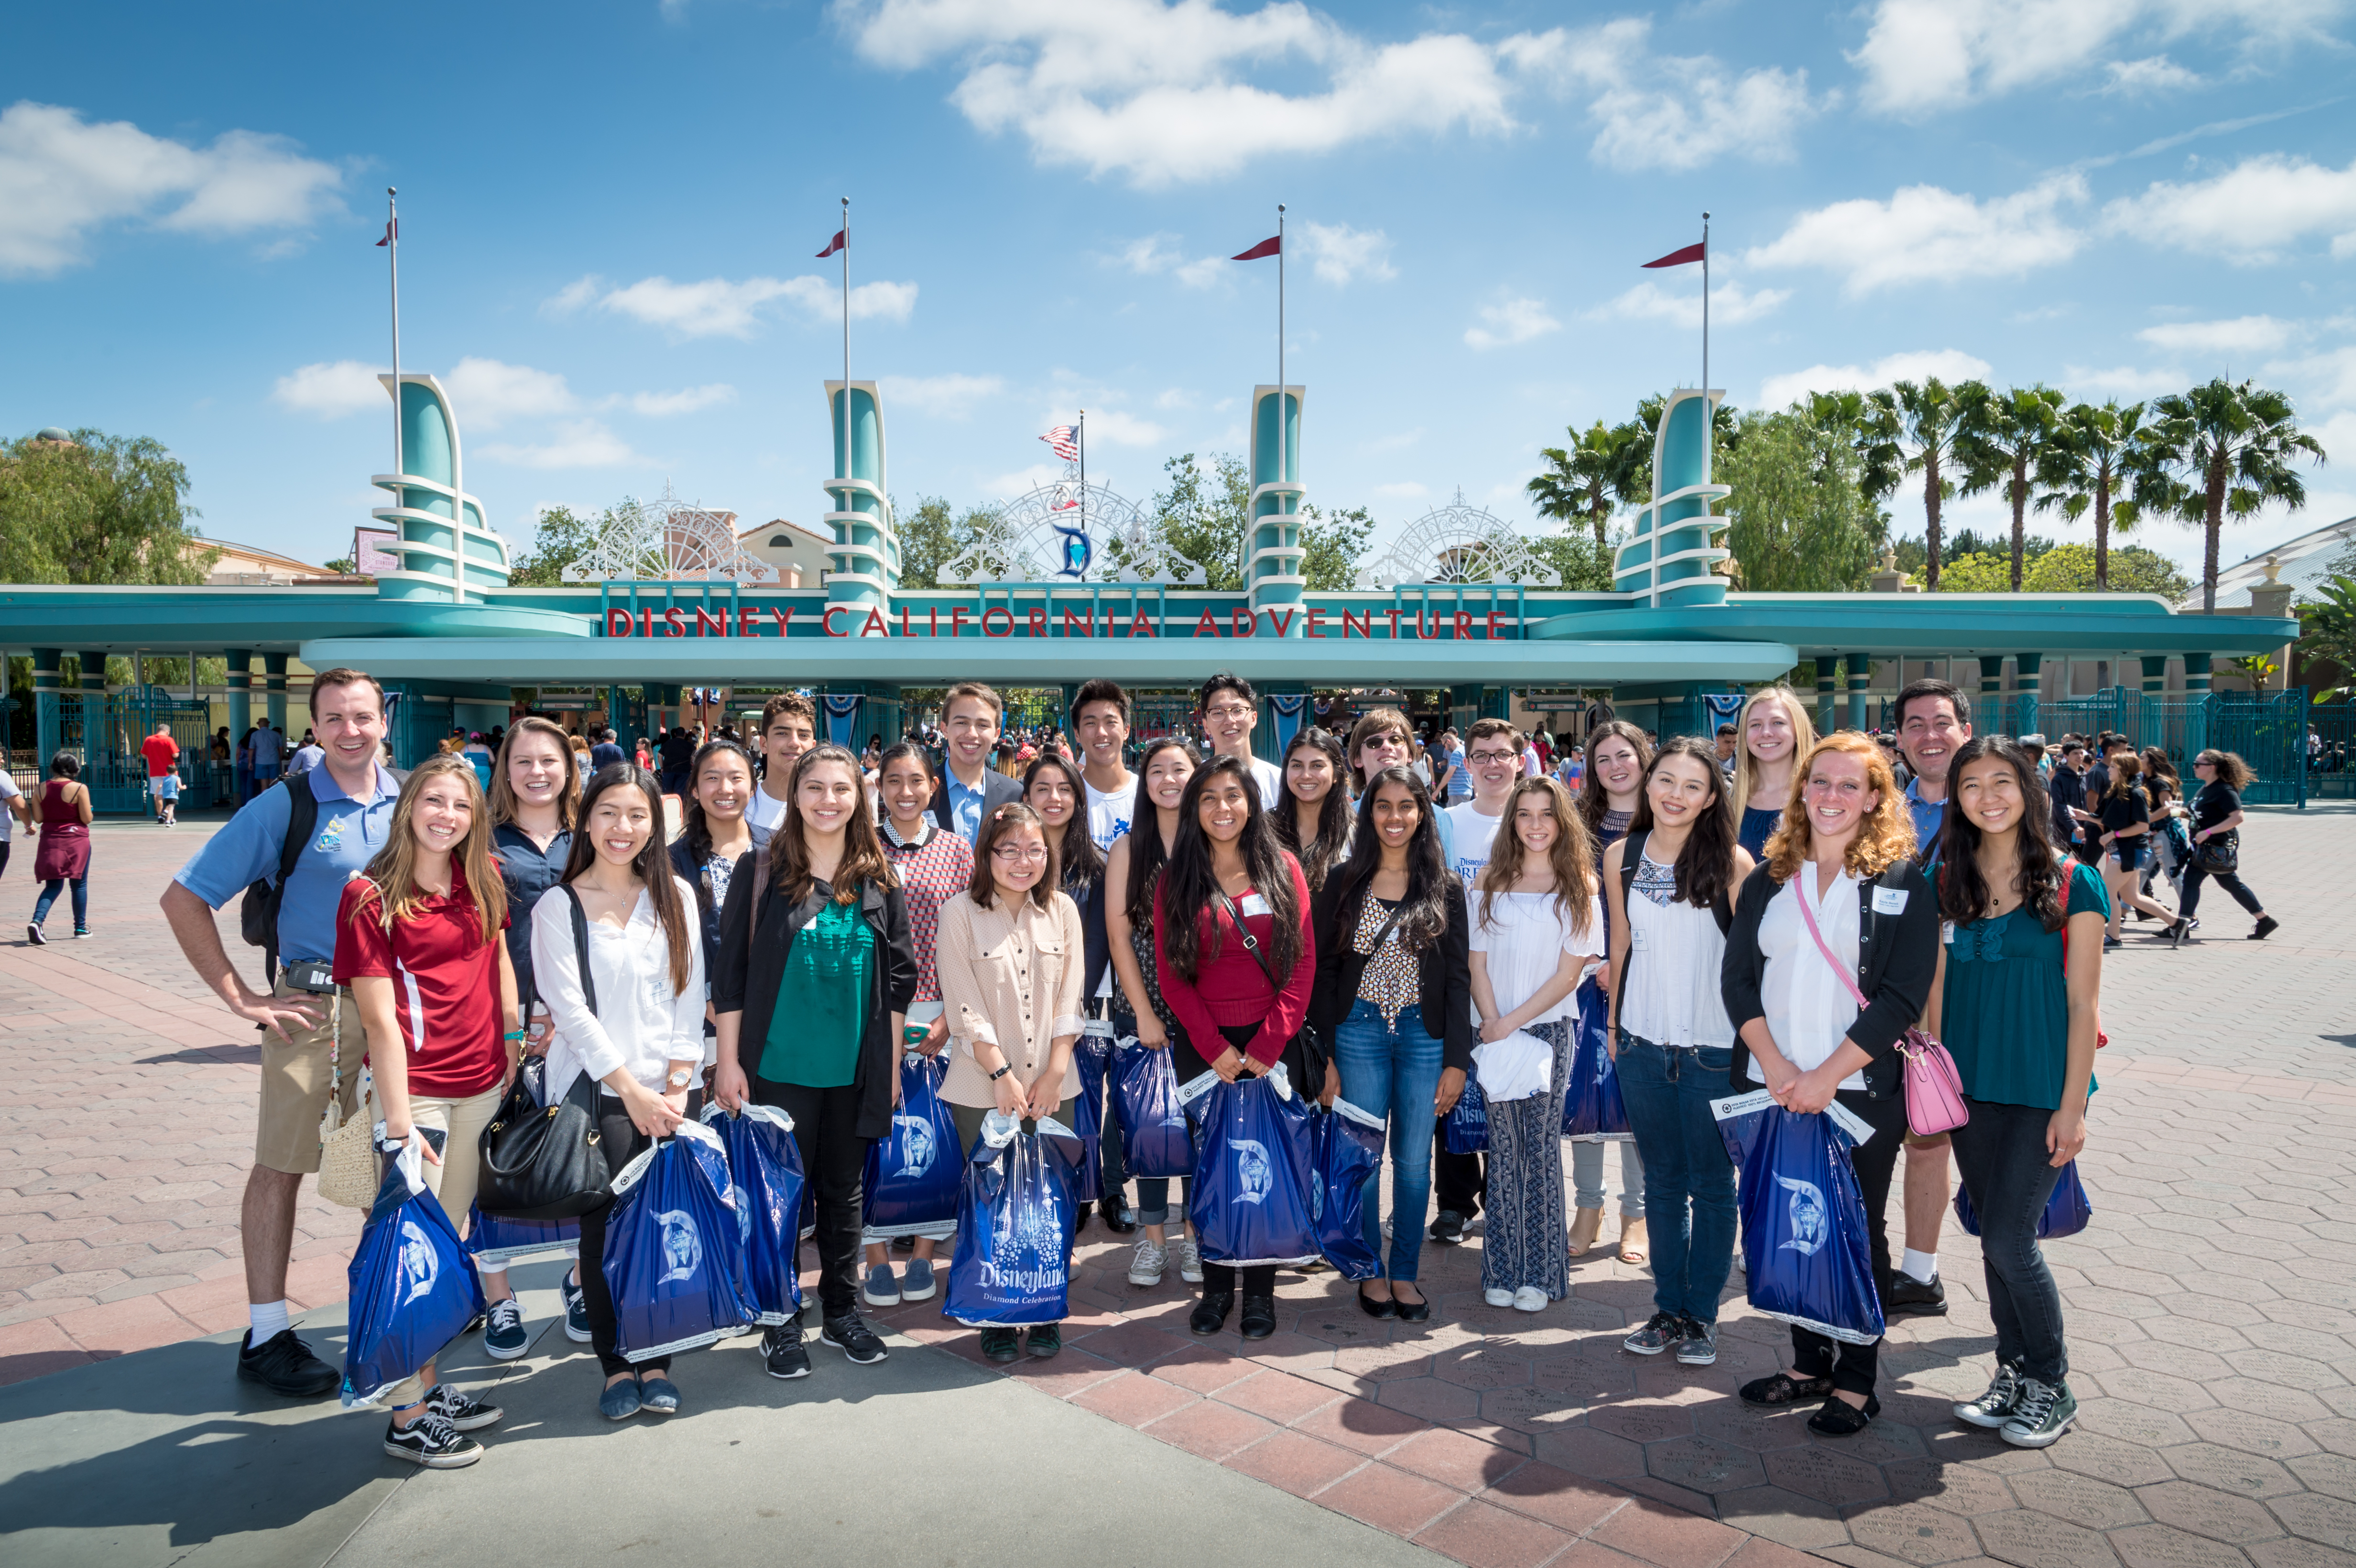 students essay about disneyland Read tokyo disneyland free essay and over 88,000 other research documents tokyo disneyland executive summary tokyo disneyland was opened to.